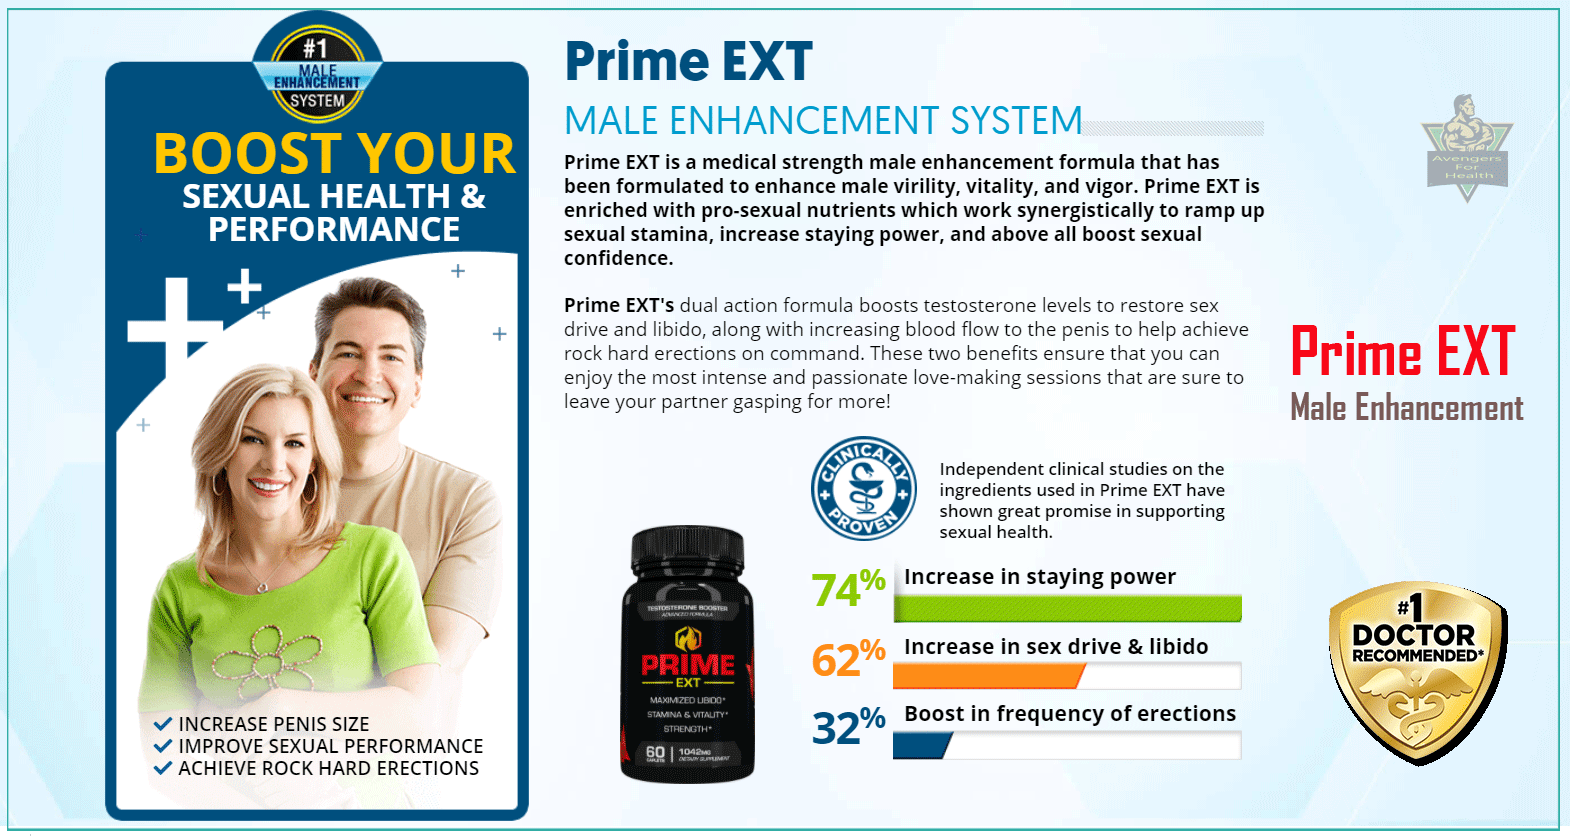 Prime-EXT-Male-Enhancemen4